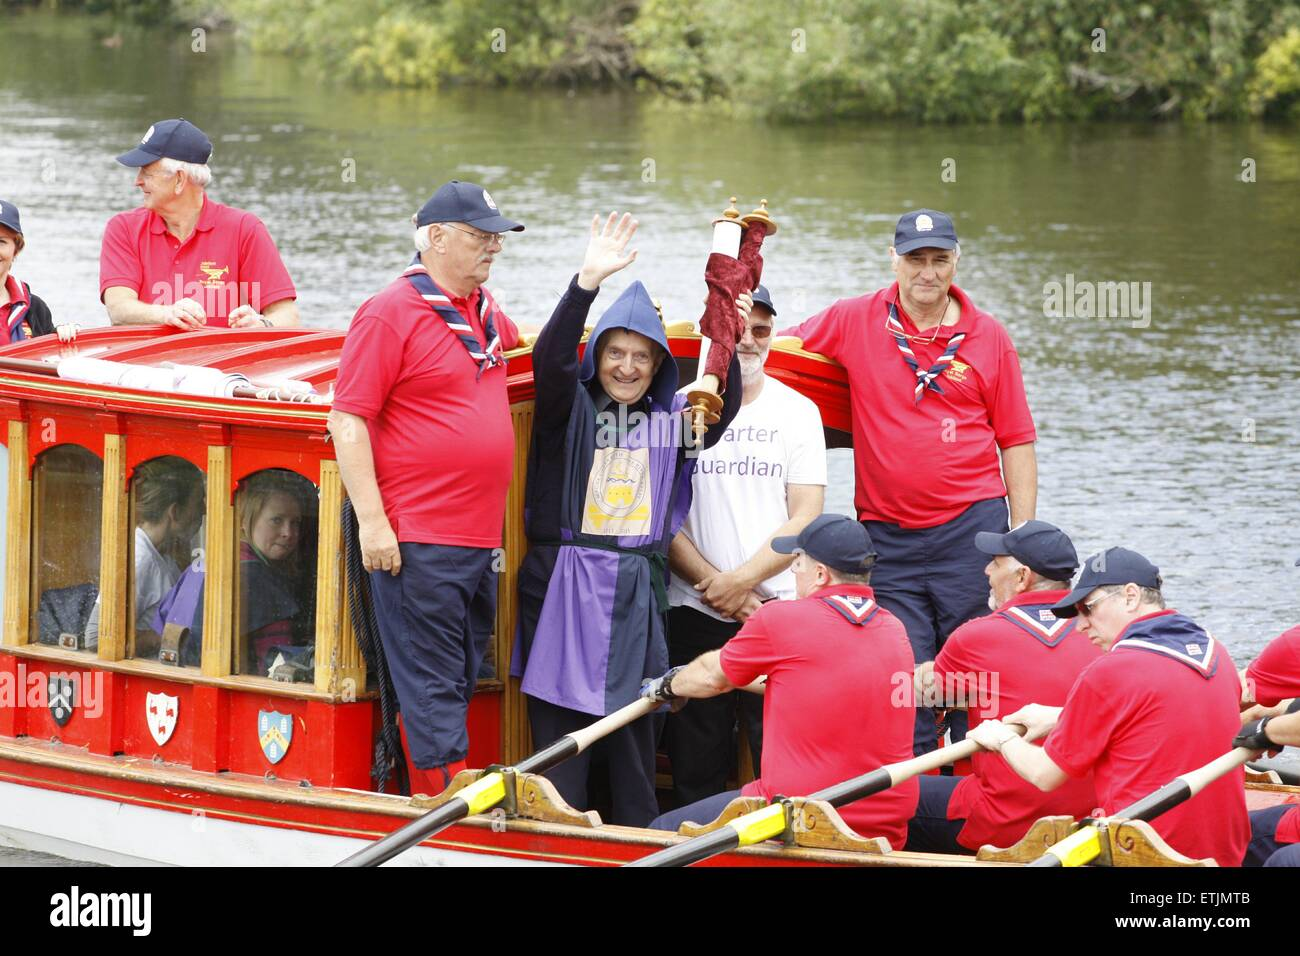 Windsor, Berkshire, UK. 14th June, 2015. A man holds aloft a replica of the magna carta.  A flotilla of boats headed - Stock Image